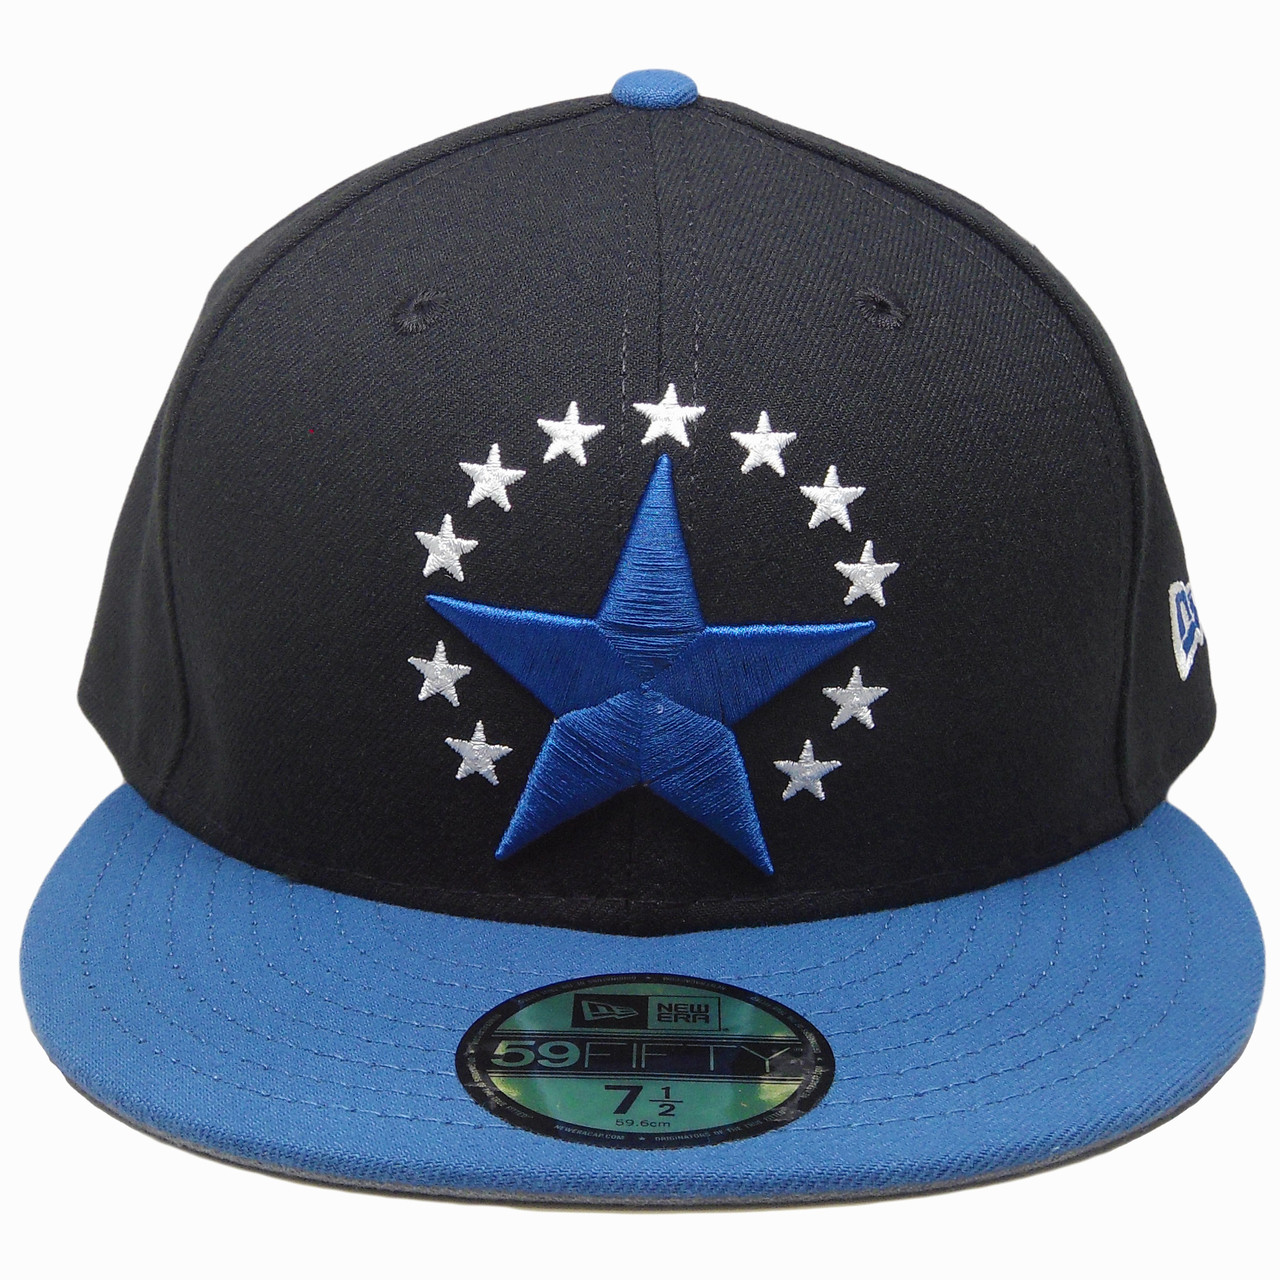 Stars New Era Custom made 59Fifty Fitted Hat - Black 8edd8e343e8